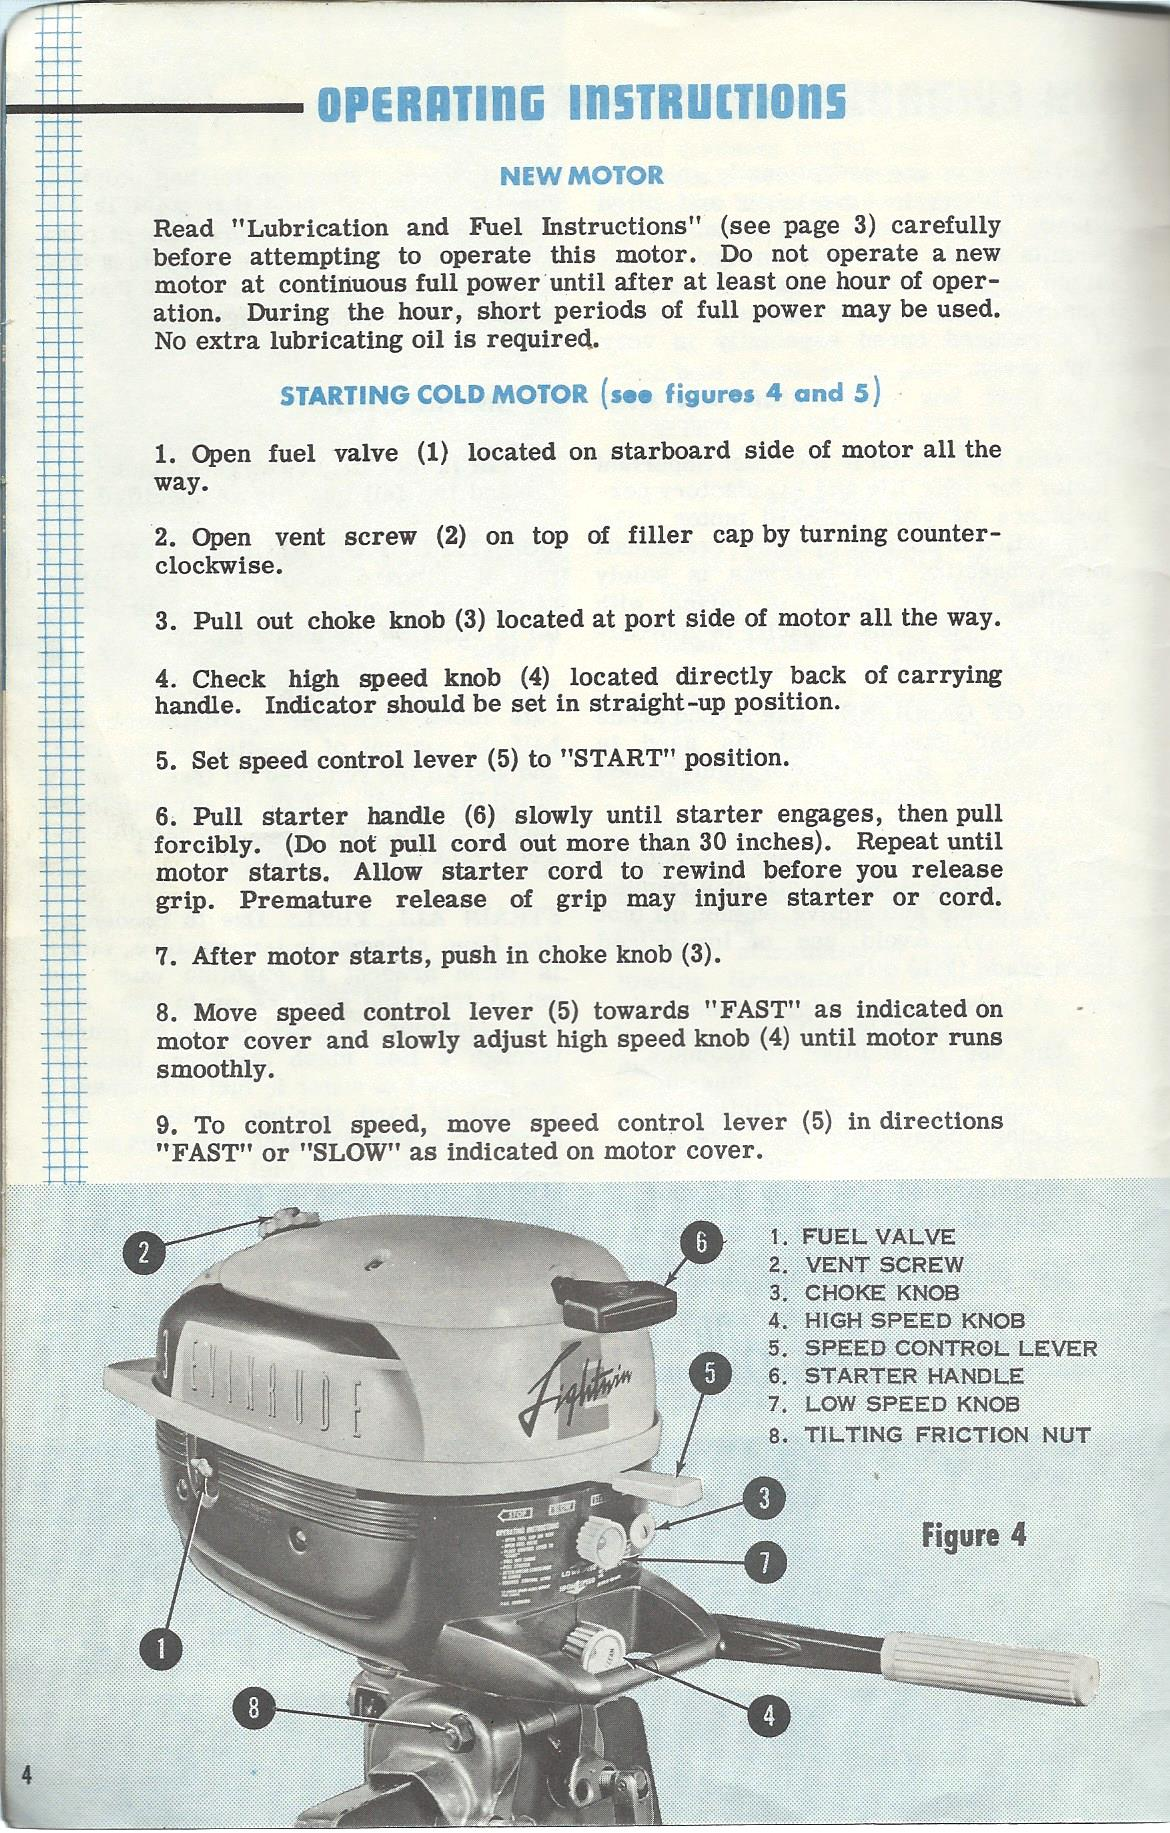 1965 Evinrude Manual Lightwin Manual Guide